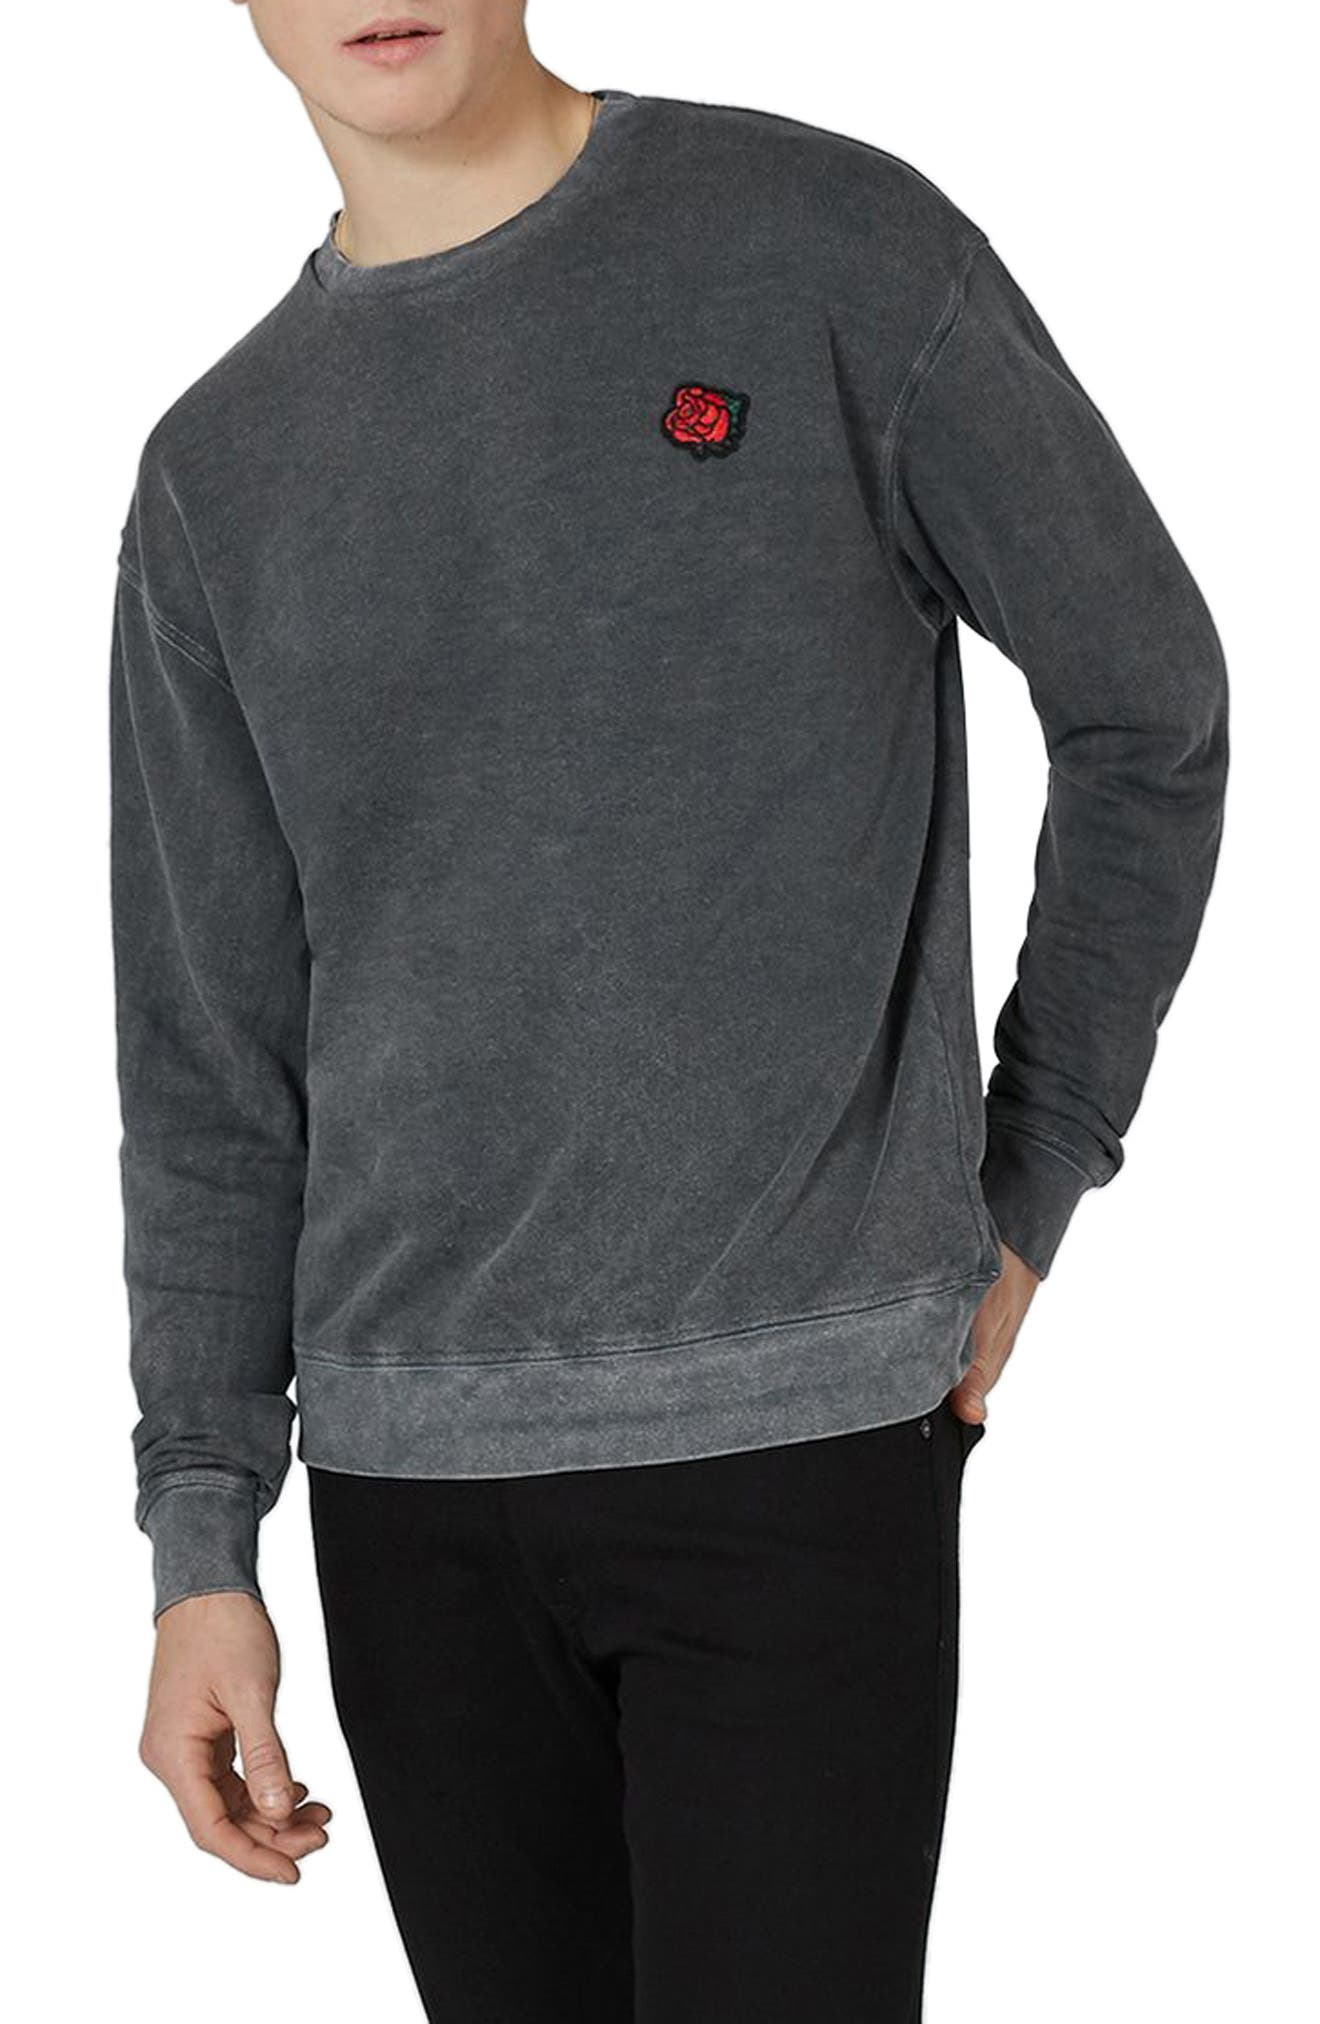 Percy Rose Embroidered Sweatshirt,                             Main thumbnail 1, color,                             020